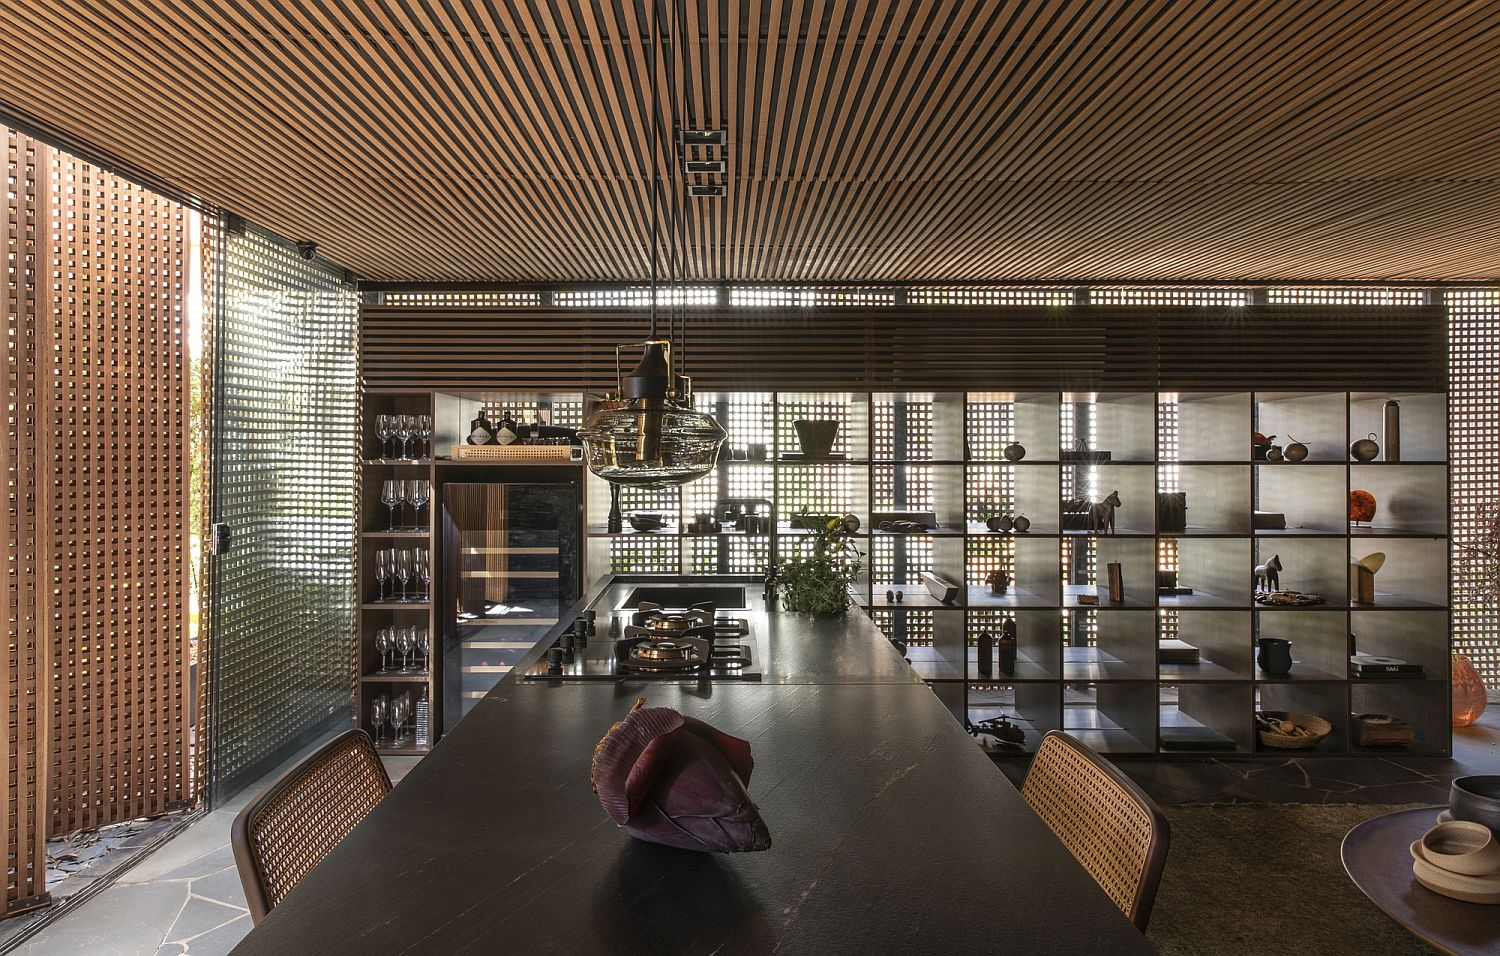 Wooden-framework-all-around-gives-the-interior-a-cozy-and-creative-appeal